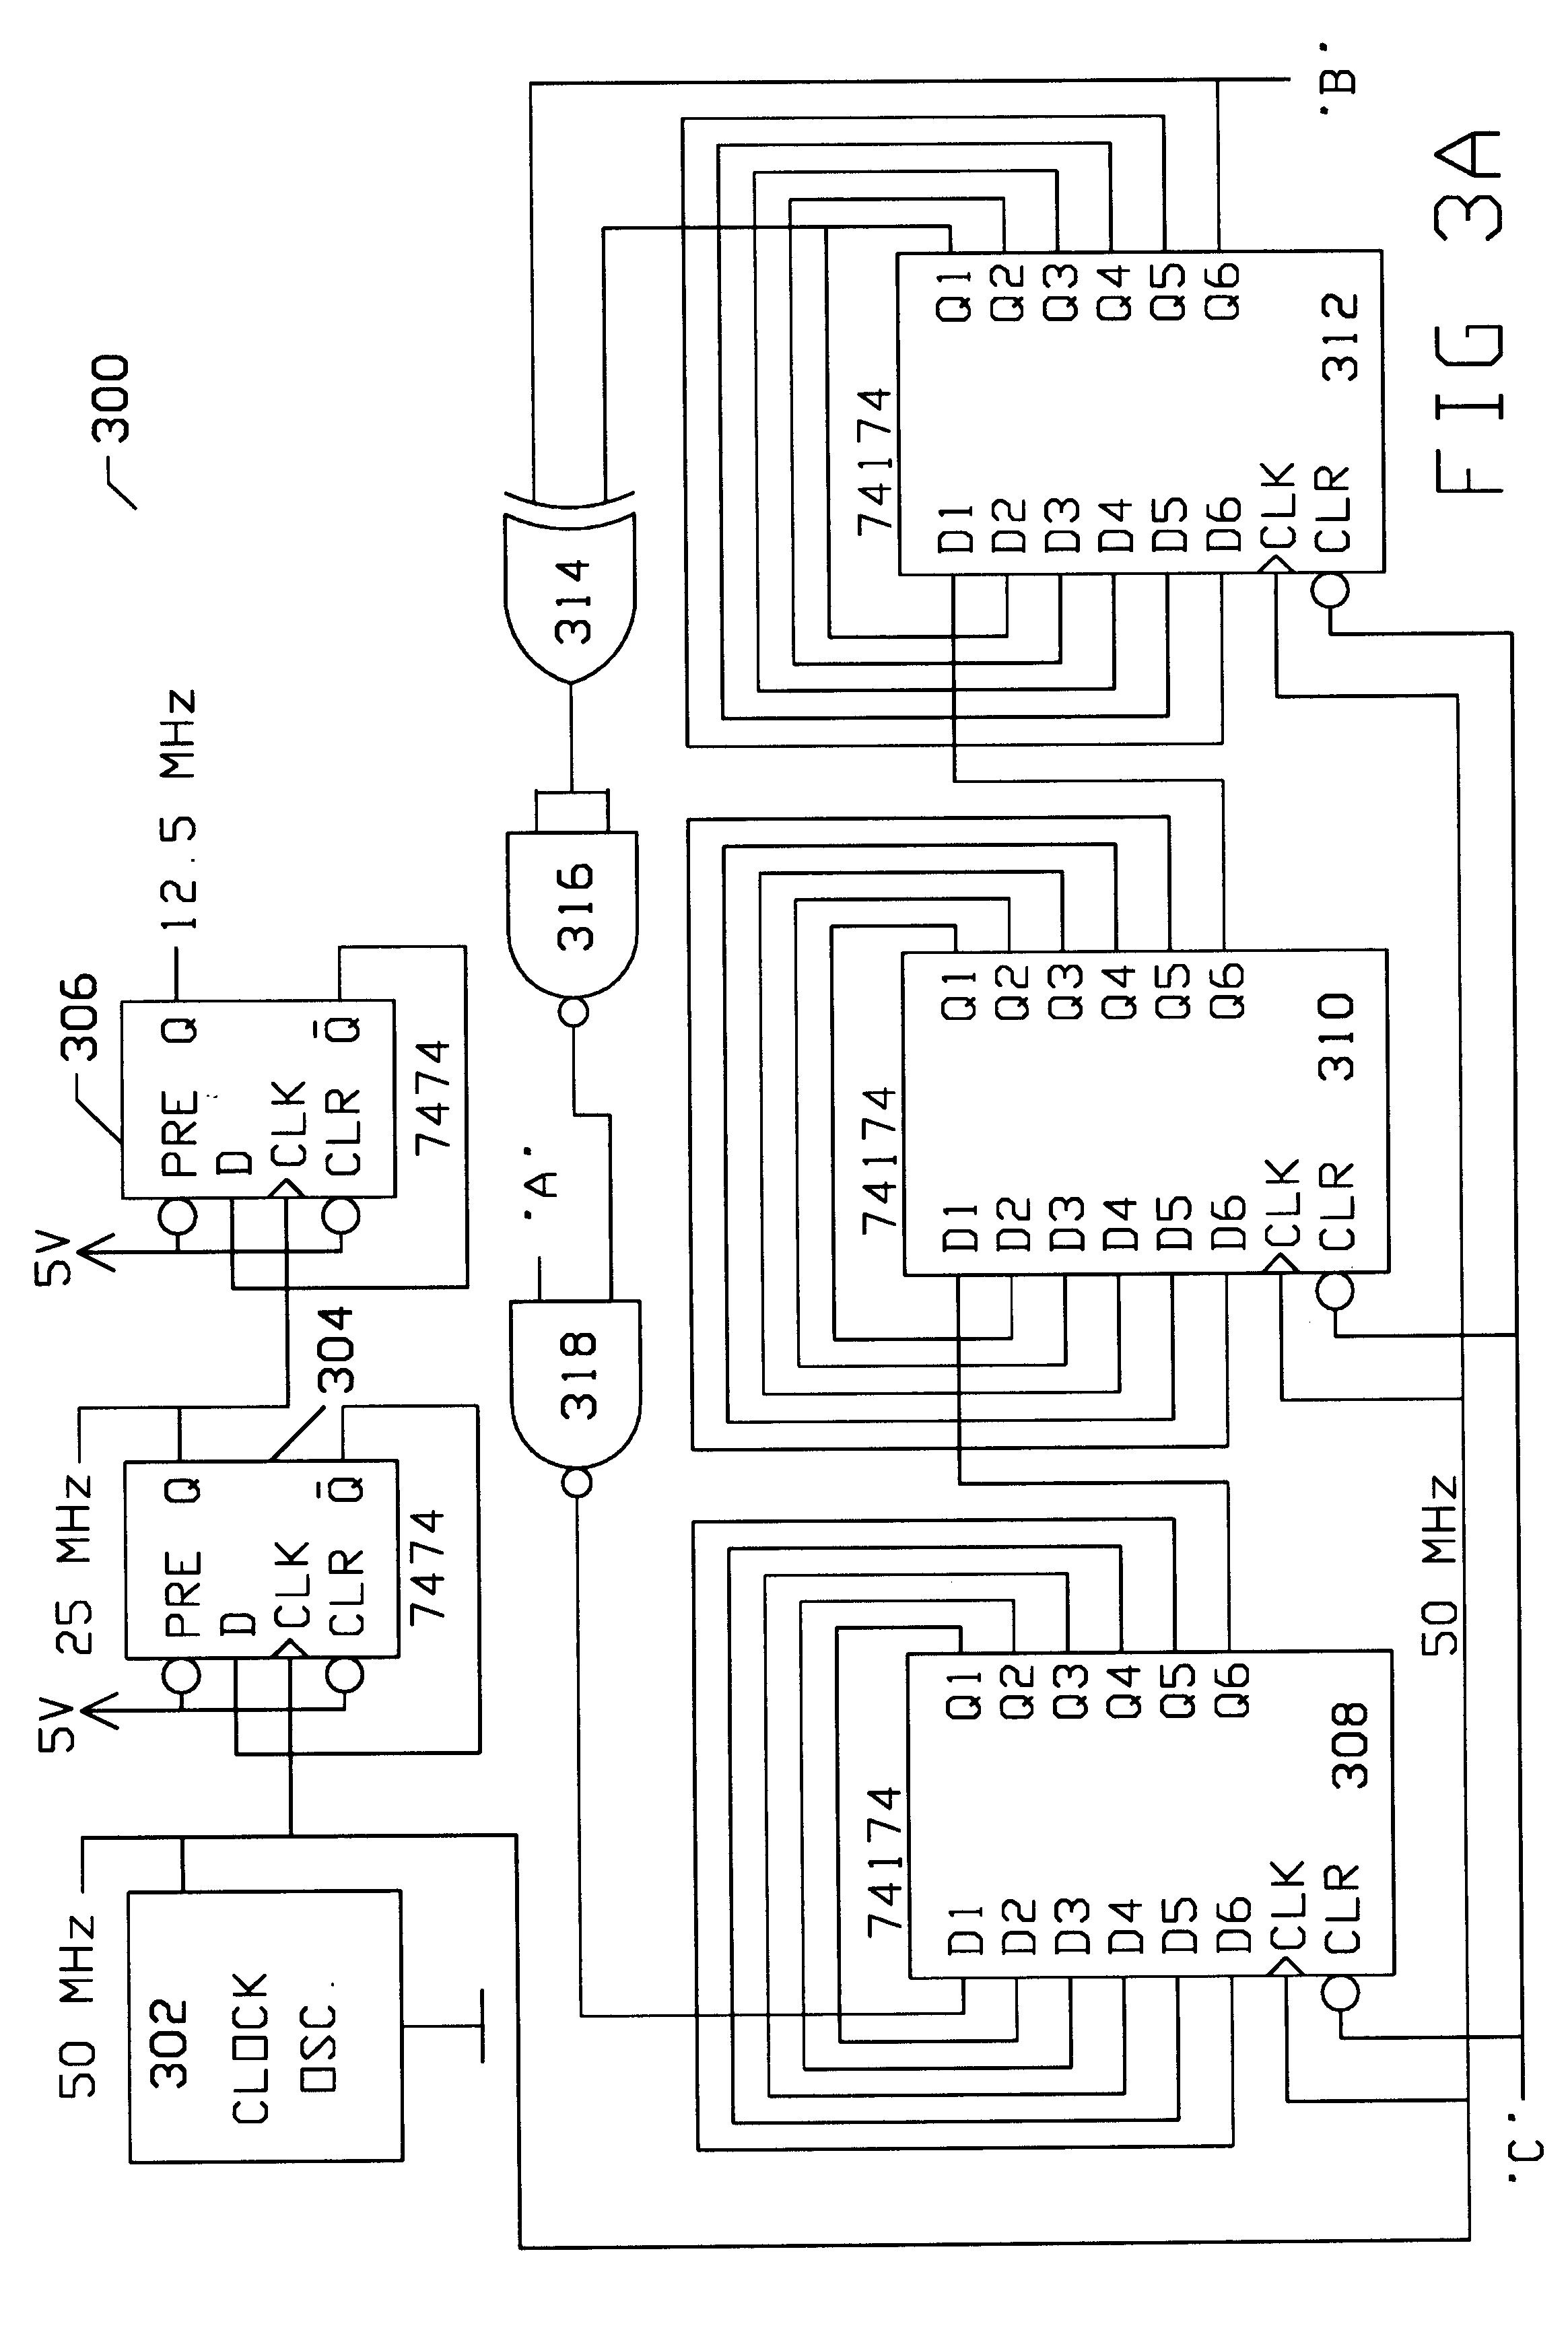 Patent Us6344749 Test System For Measuring Frequency Response And Pre Lifier Circuit Likewise 5 Band Graphic Equalizer Diagrams Drawing